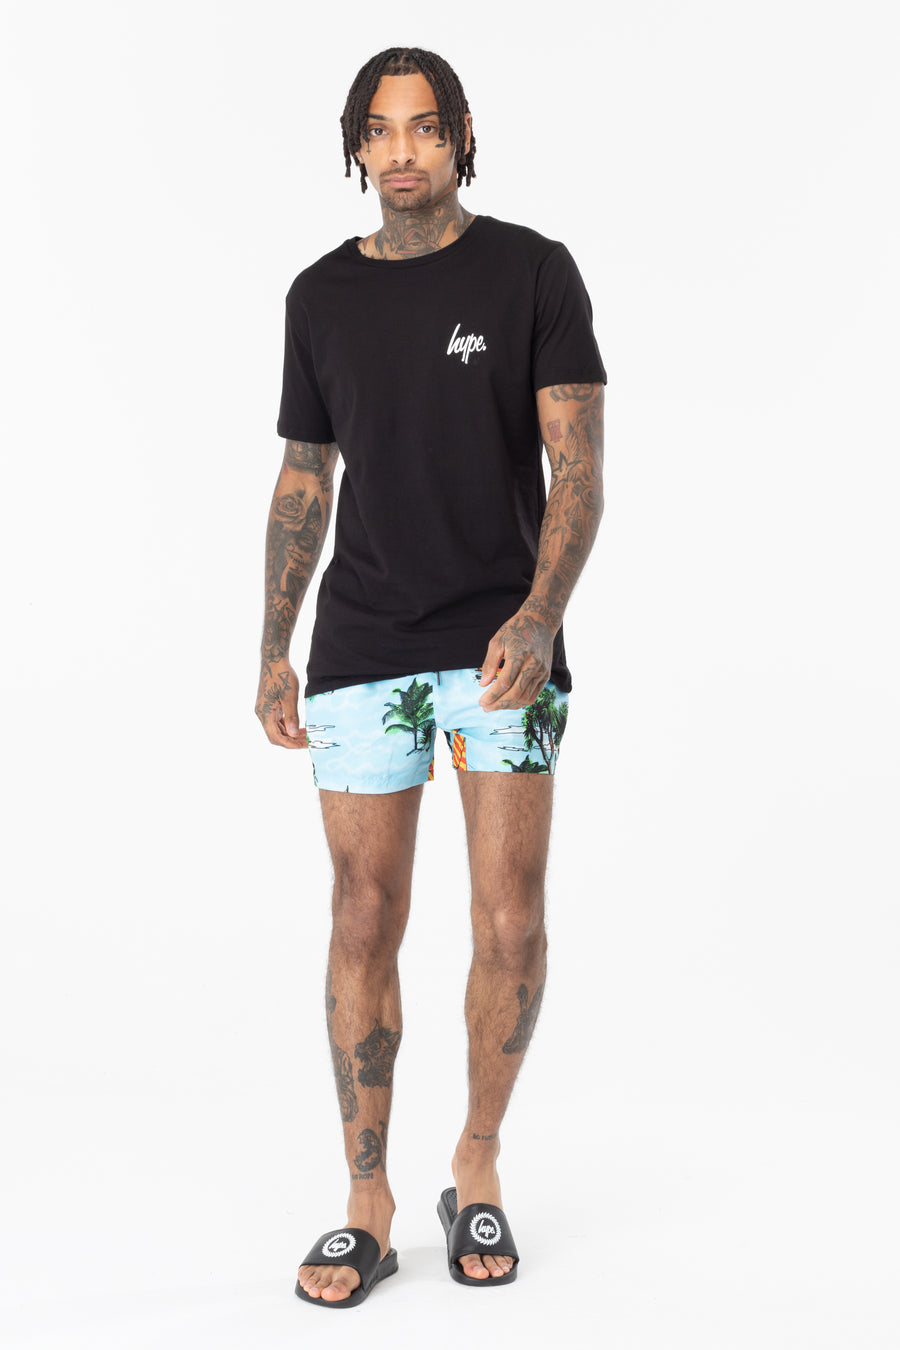 HYPE Men's Swim Shorts Island Life